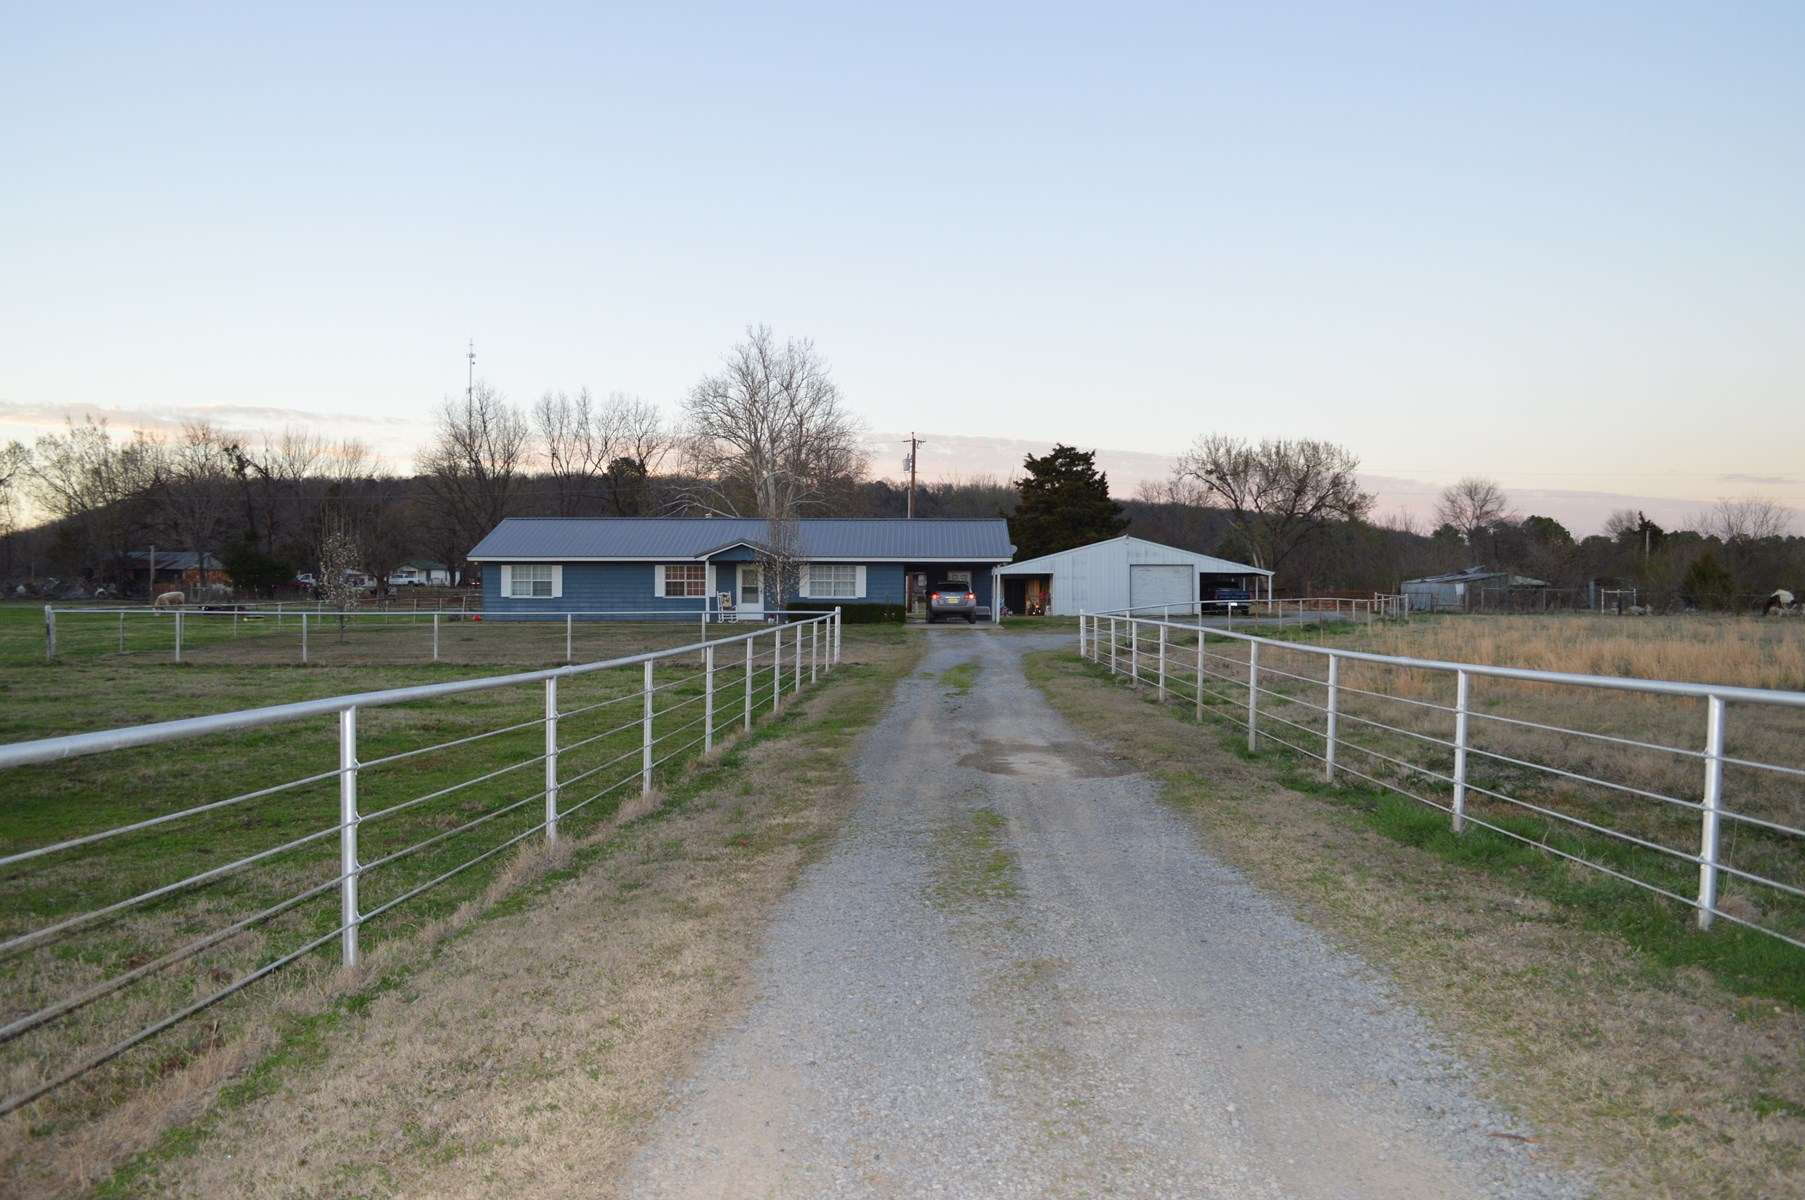 Home for sale-Hartshorne,OK- Home with land for sale